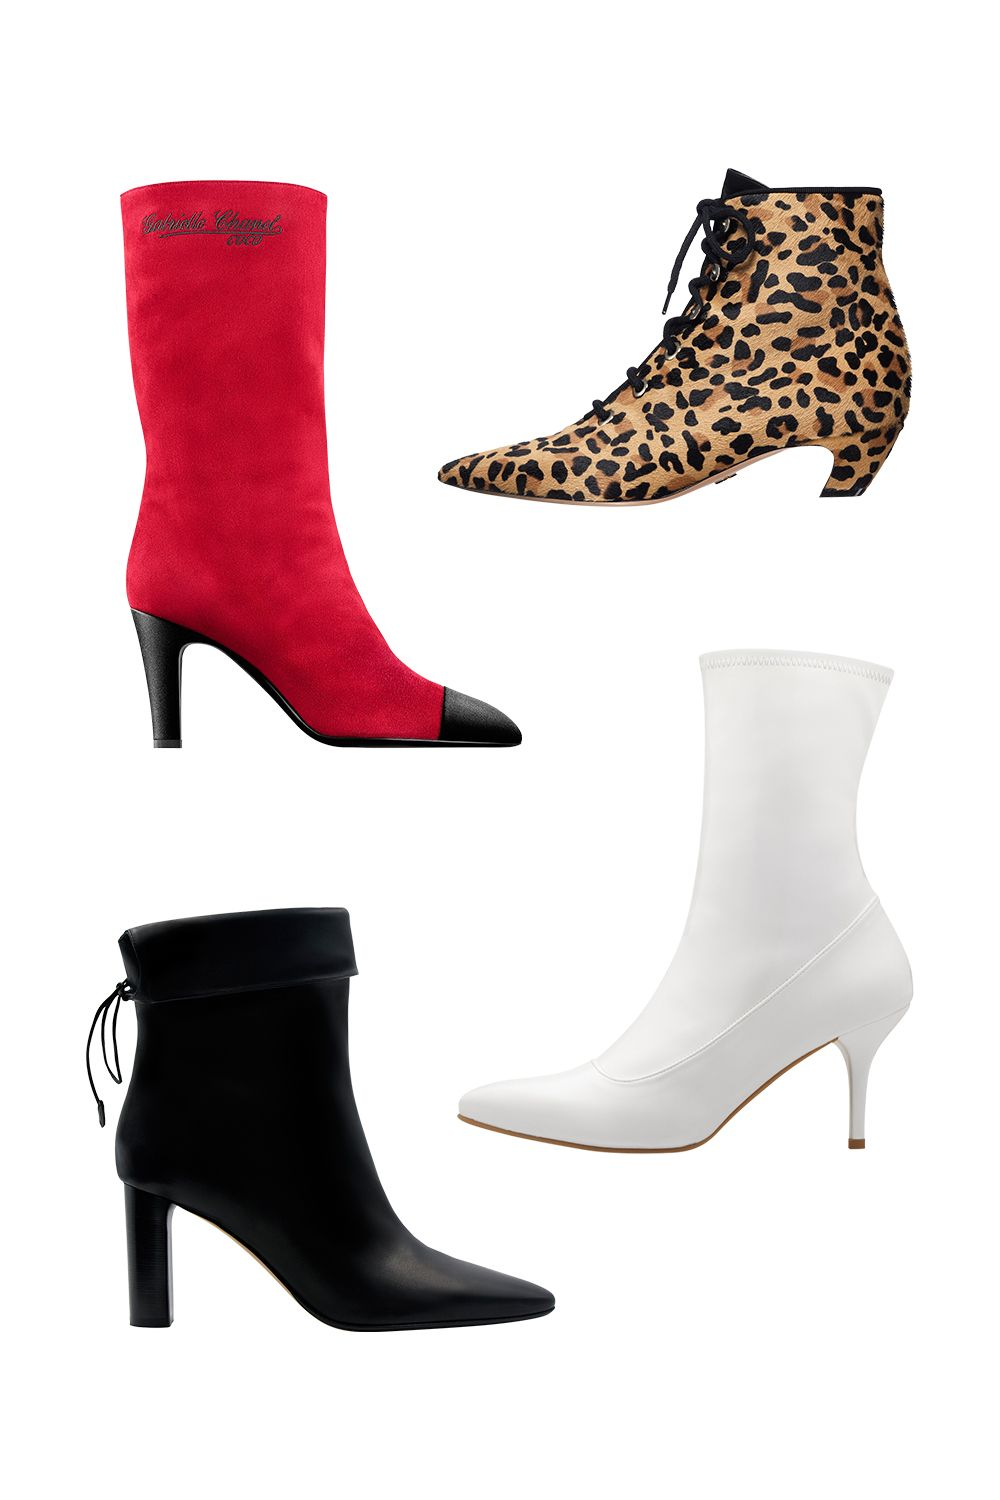 """<p>I live in boots and think they're perfectly appropriate for summer in the city. I'll wear mine with cuffed pants or skinnies, but try them with a dress—anything from a slip to a long, flowy maxi—to take you right out of boho territory. </p><p>(Clockwise from top left) </p><p>1. This one's a bit slouchy—pull it up for a longer hemline, or scrunch it low to give the mini some gravitas. </p><p> <em data-redactor-tag=""""em"""">Suede calfskin and satin boot, CHANEL, $1,450, call 800-550-0005</em><em data-redactor-tag=""""em""""></em><br> </p><p><span class=""""redactor-invisible-space"""" data-verified=""""redactor"""" data-redactor-tag=""""span"""" data-redactor-class=""""redactor-invisible-space"""">2. Pair a short dress with a boot that hits right at the ankle. </span> </p><p><span class=""""redactor-invisible-space"""" data-verified=""""redactor"""" data-redactor-tag=""""span"""" data-redactor-class=""""redactor-invisible-space""""><em data-redactor-tag=""""em"""">Pony hair ankle boot, DIOR, at Dior boutiques</em><span class=""""redactor-invisible-space"""" data-verified=""""redactor"""" data-redactor-tag=""""span"""" data-redactor-class=""""redactor-invisible-space""""><em data-redactor-tag=""""em""""></em></span></span> </p><p>3. A taller style is best for a maxidress: no gap between hem and shoe.</p><p><span class=""""redactor-invisible-space"""" data-verified=""""redactor"""" data-redactor-tag=""""span"""" data-redactor-class=""""redactor-invisible-space""""><em data-redactor-tag=""""em""""></em></span></p><p><i data-redactor-tag=""""i"""">Stretch patent leather boot, STUART WEITZMAN, $575, visit stuartweitzman.com</i></p><p><span class=""""redactor-invisible-space"""" data-verified=""""redactor"""" data-redactor-tag=""""span"""" data-redactor-class=""""redactor-invisible-space""""><span class=""""redactor-invisible-space"""" data-verified=""""redactor"""" data-redactor-tag=""""span"""" data-redactor-class=""""redactor-invisible-space""""><span class=""""redactor-invisible-space"""" data-verified=""""redactor"""" data-redactor-tag=""""span"""" data-redactor-class=""""redactor-invisible-space"""">4. </span></span></span>A cinched opening is the skinny jean's b"""